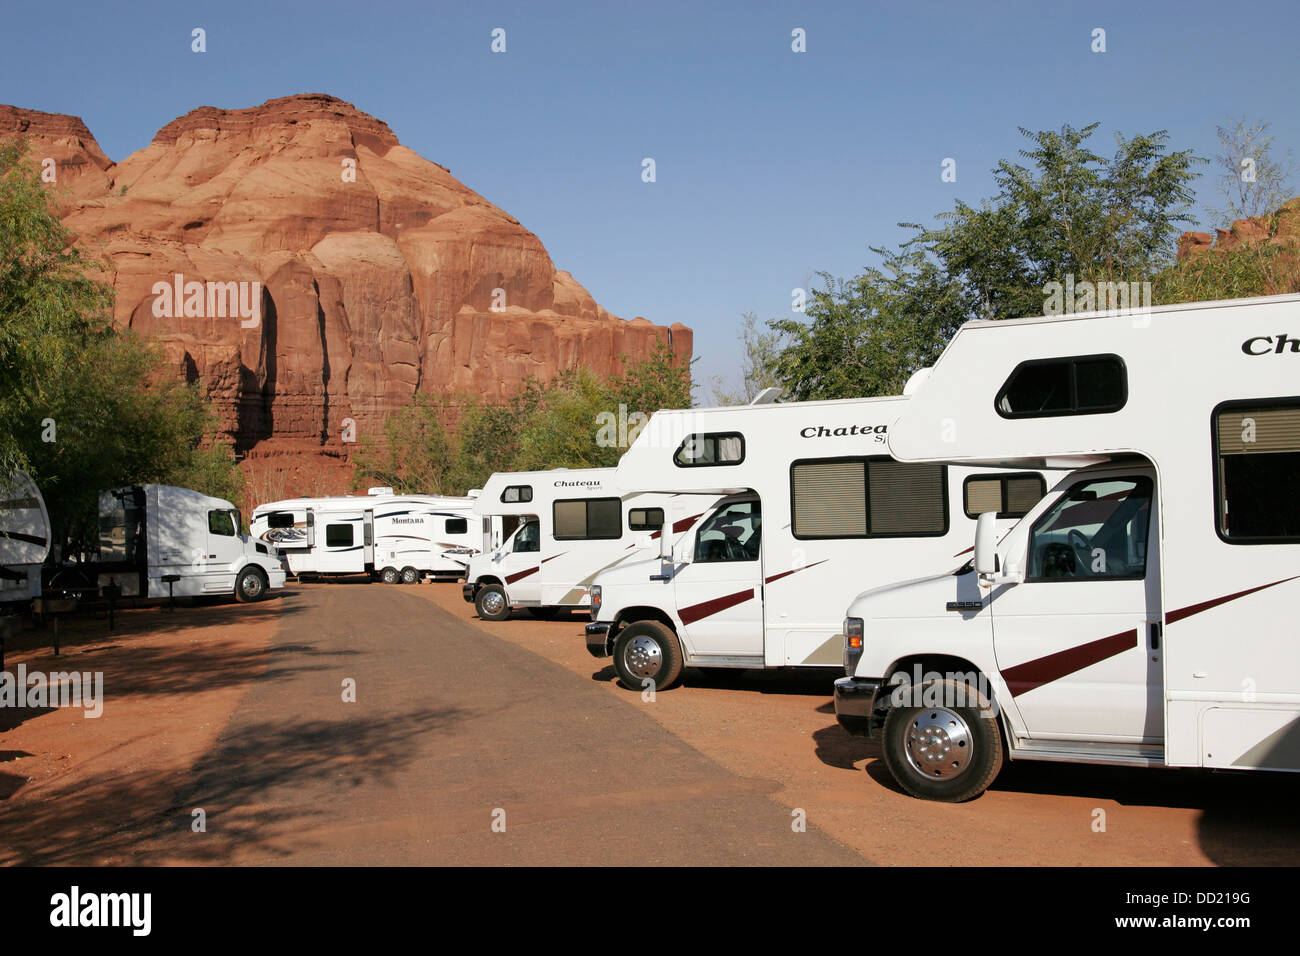 Trailers in the RV Park, Utah, USA - Stock Image